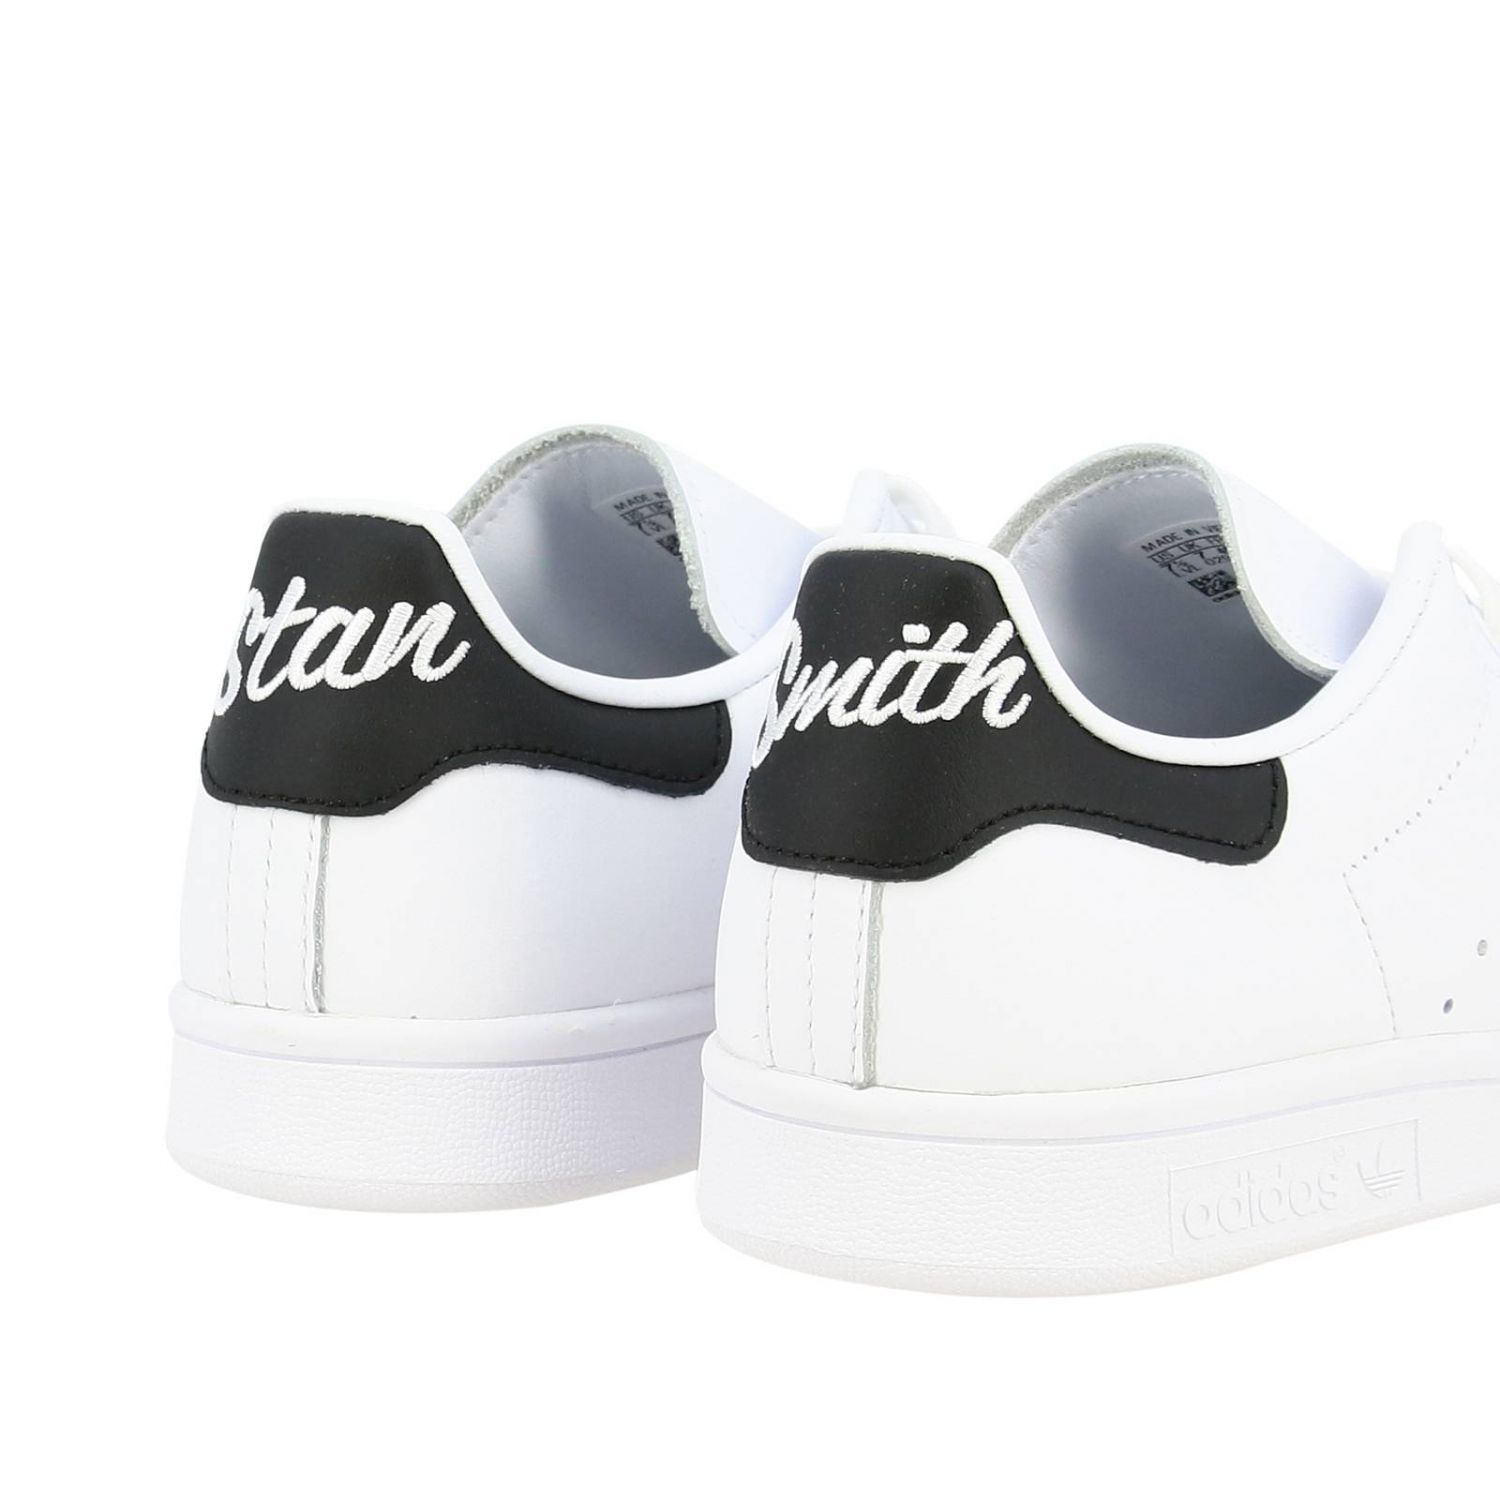 Sneakers Adidas Originals: Stan Smith Adidas Originals Sneakers in leather with contrasting heel white 5